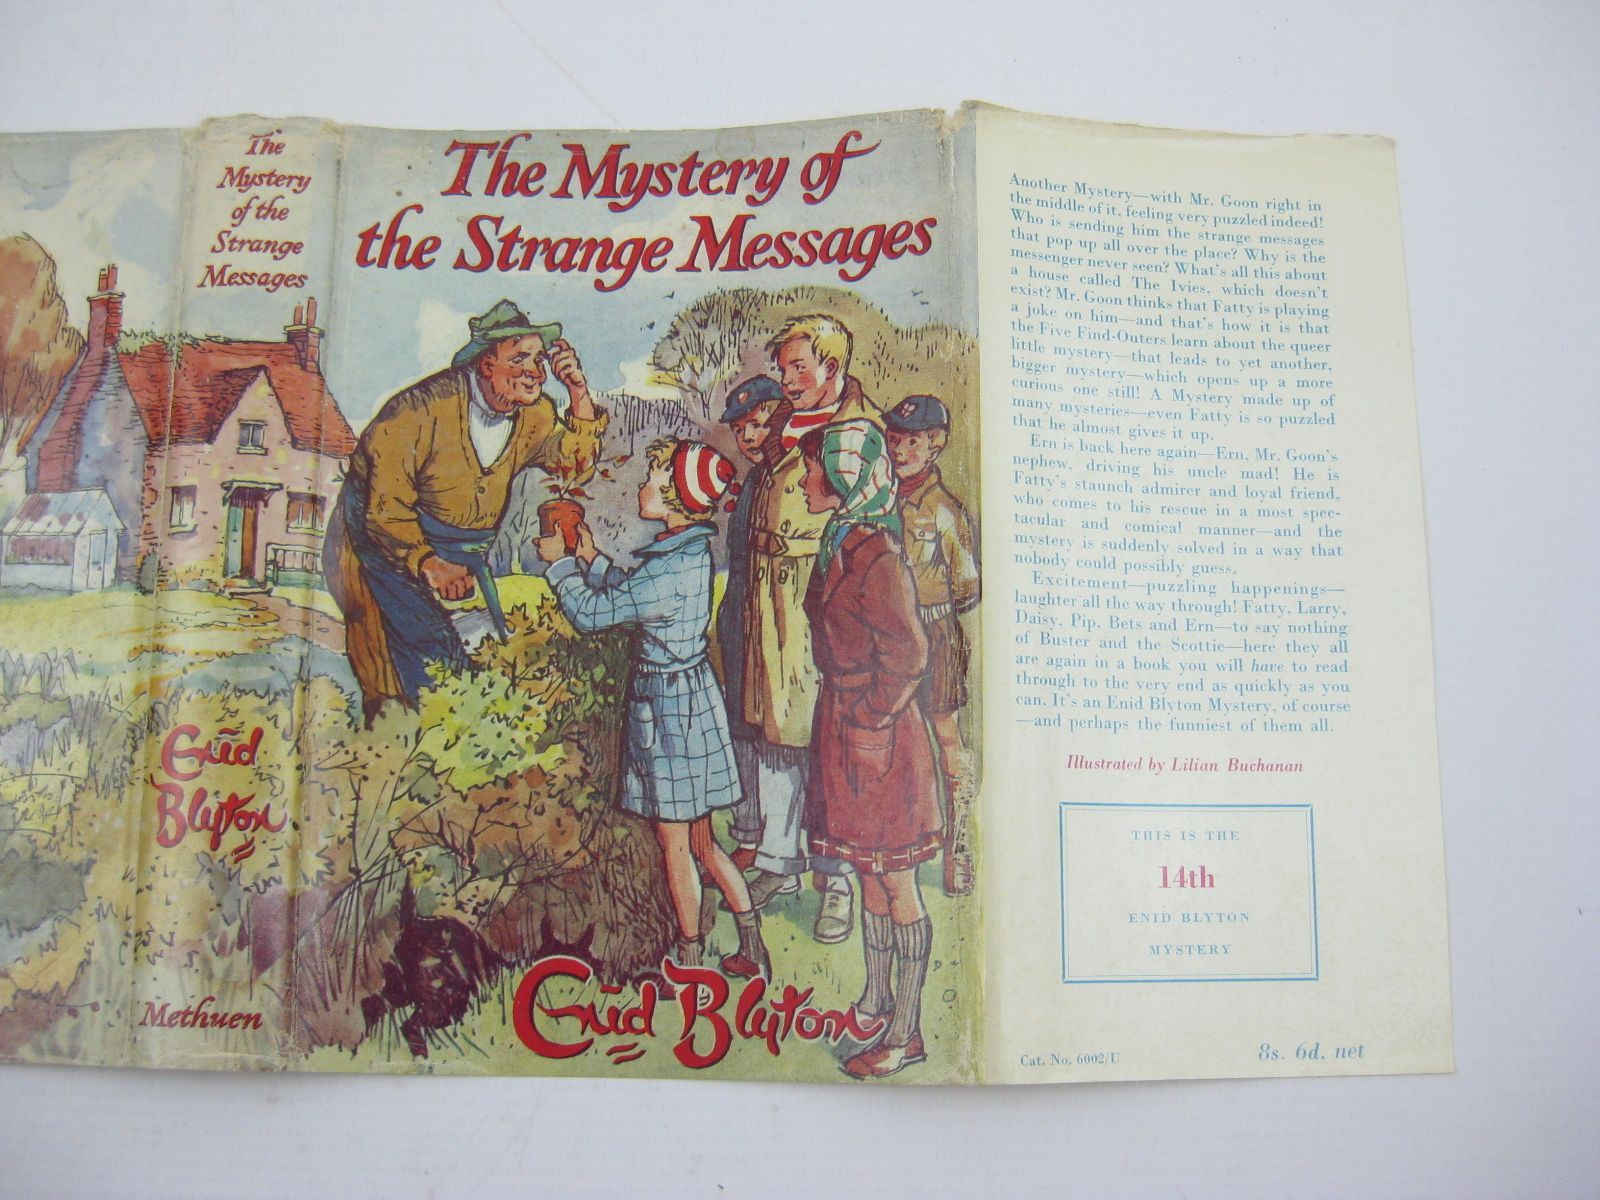 Photo of THE MYSTERY OF THE STRANGE MESSAGES written by Blyton, Enid illustrated by Buchanan, Lilian published by Methuen & Co. Ltd. (STOCK CODE: 1407006)  for sale by Stella & Rose's Books